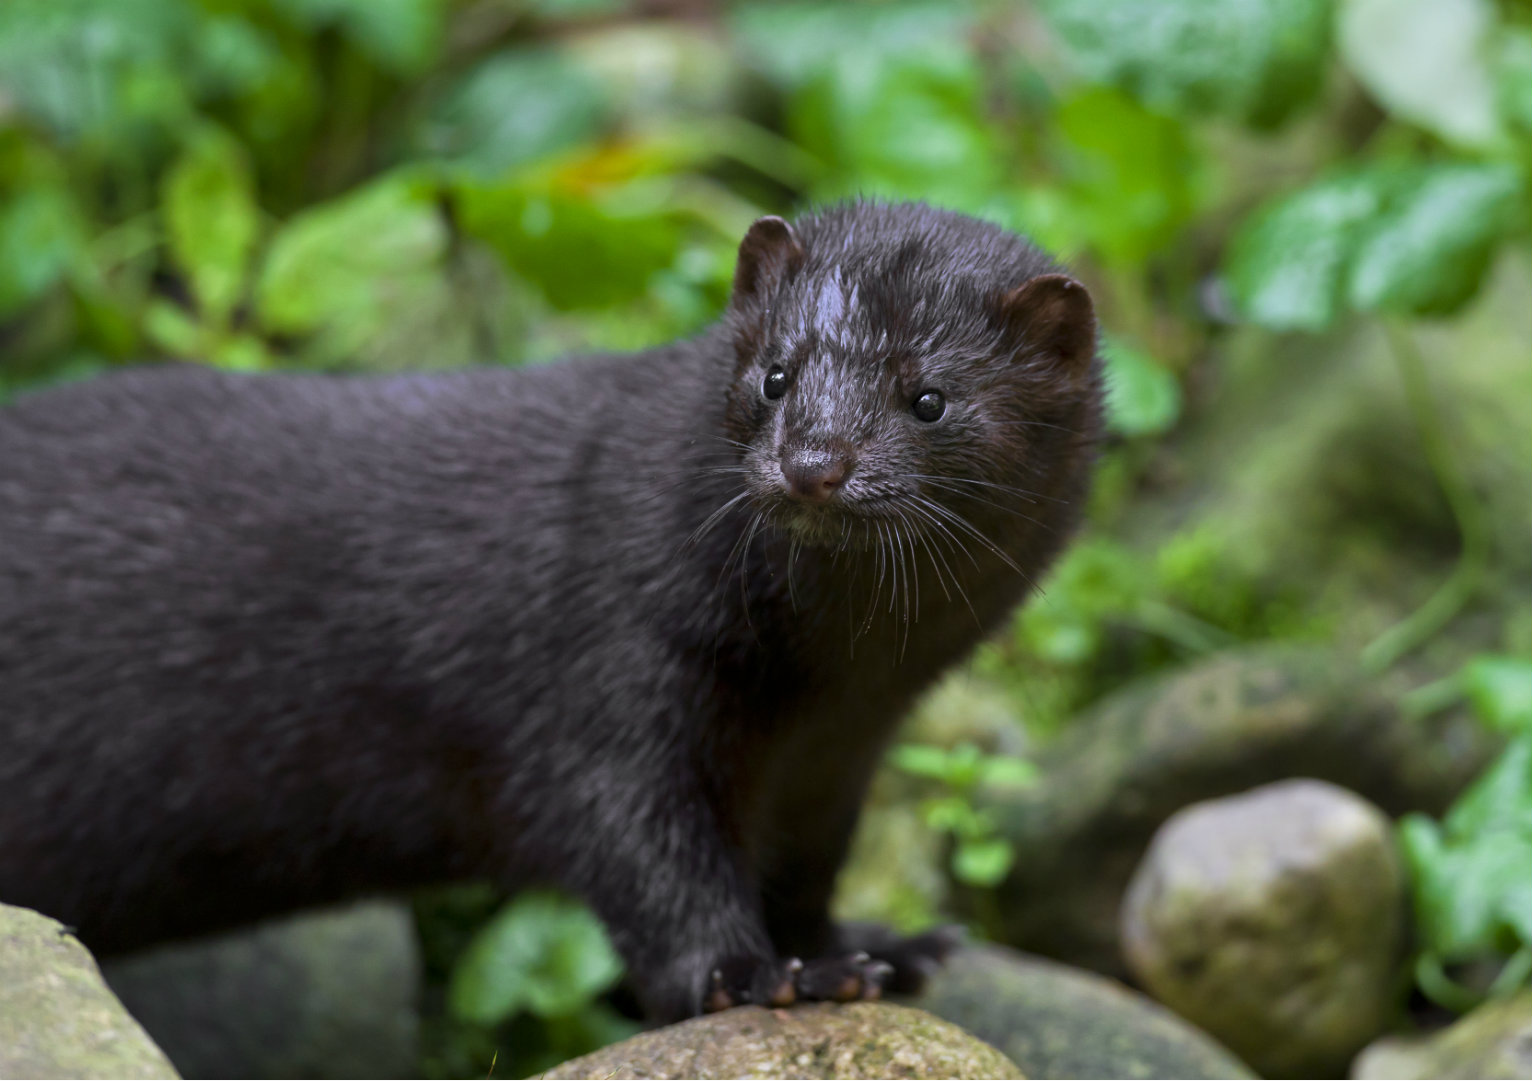 What Do Minks Eat 2021 - Image By usnews